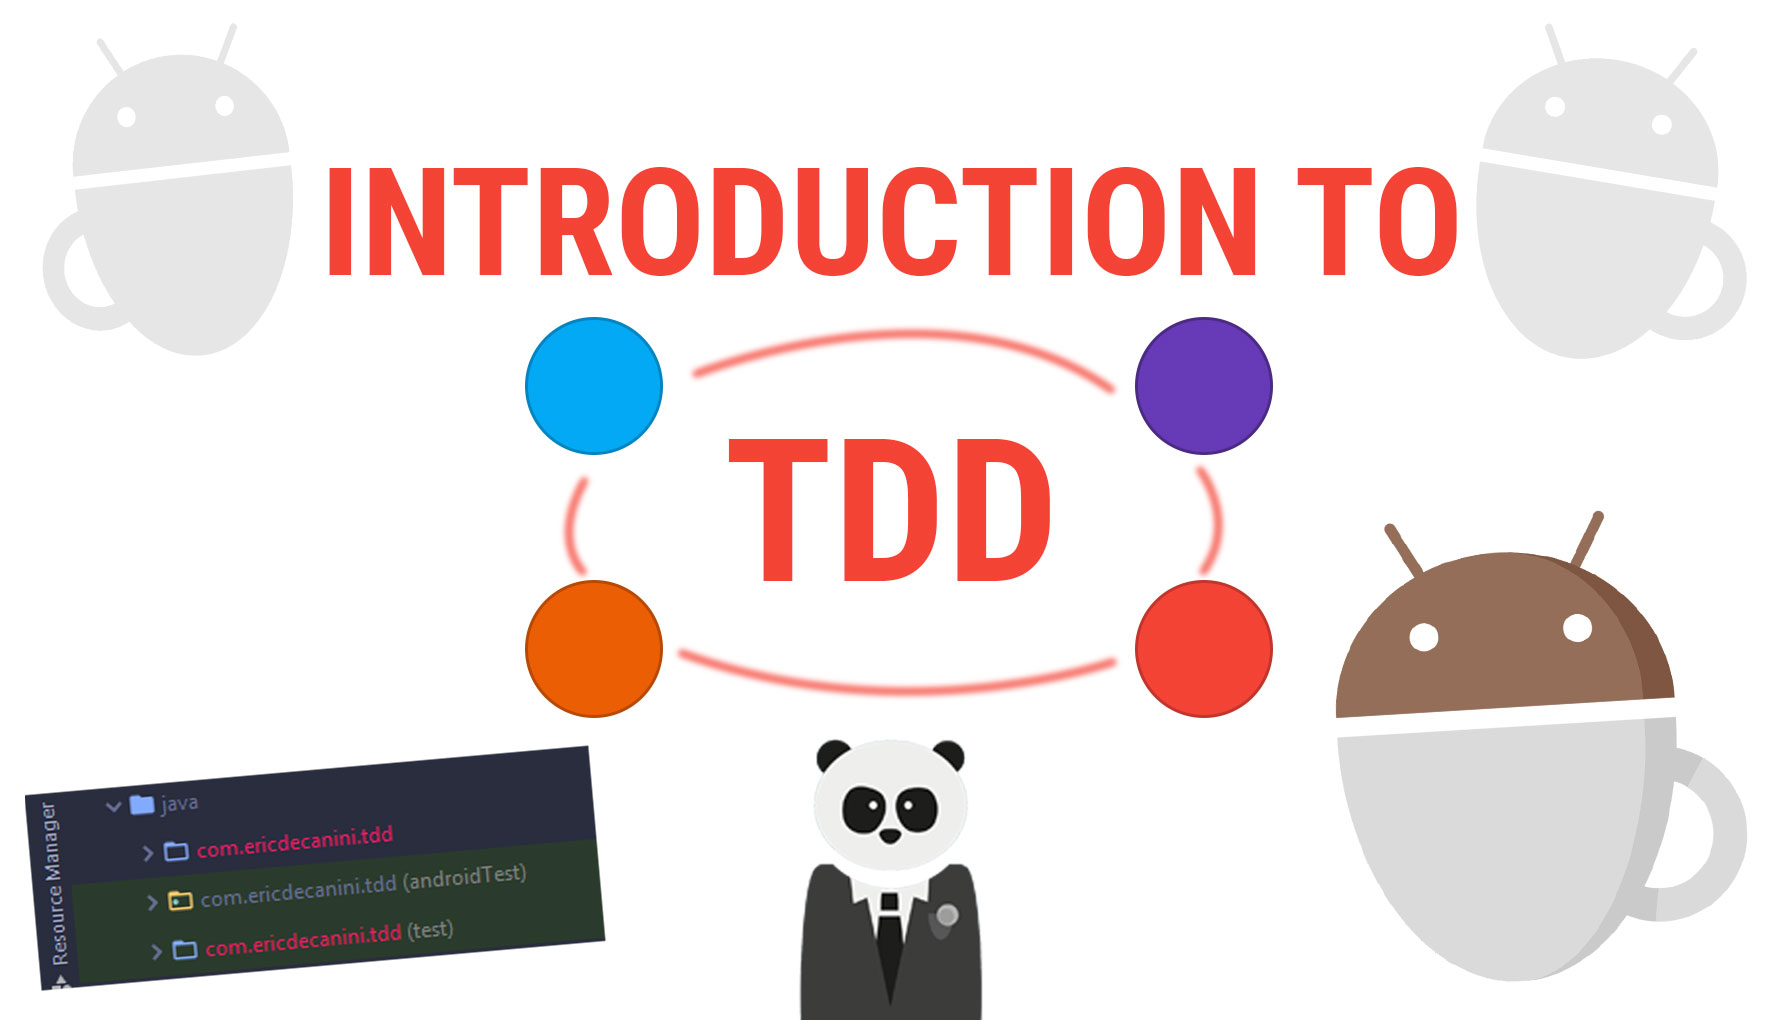 An Introduction to Test-Driven-Development (TDD) for Android